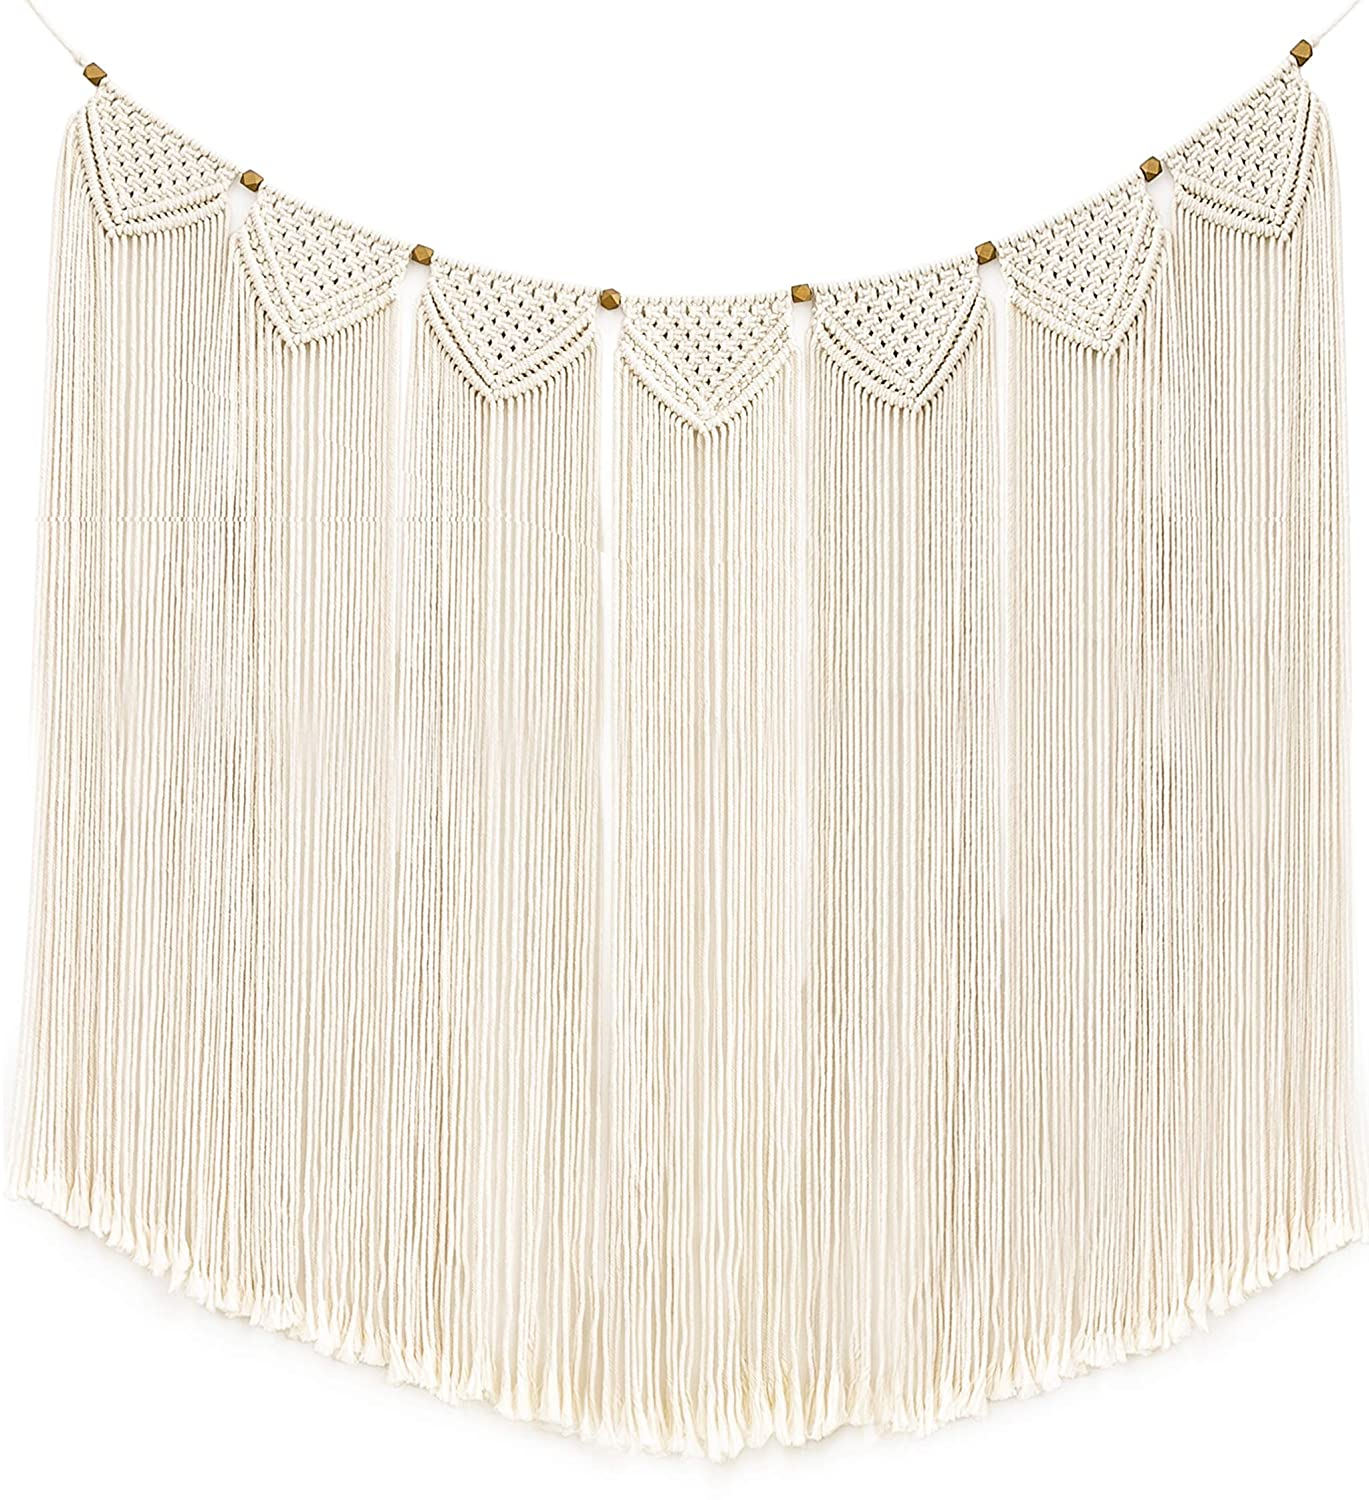 "Mkono Macrame Wall Hanging Curtain Fringe Garland Banner Bohemian Wall Decor Woven Home Decoration for Apartment Bedroom Living Room Gallery Baby Nursery 47""L X 28""W"